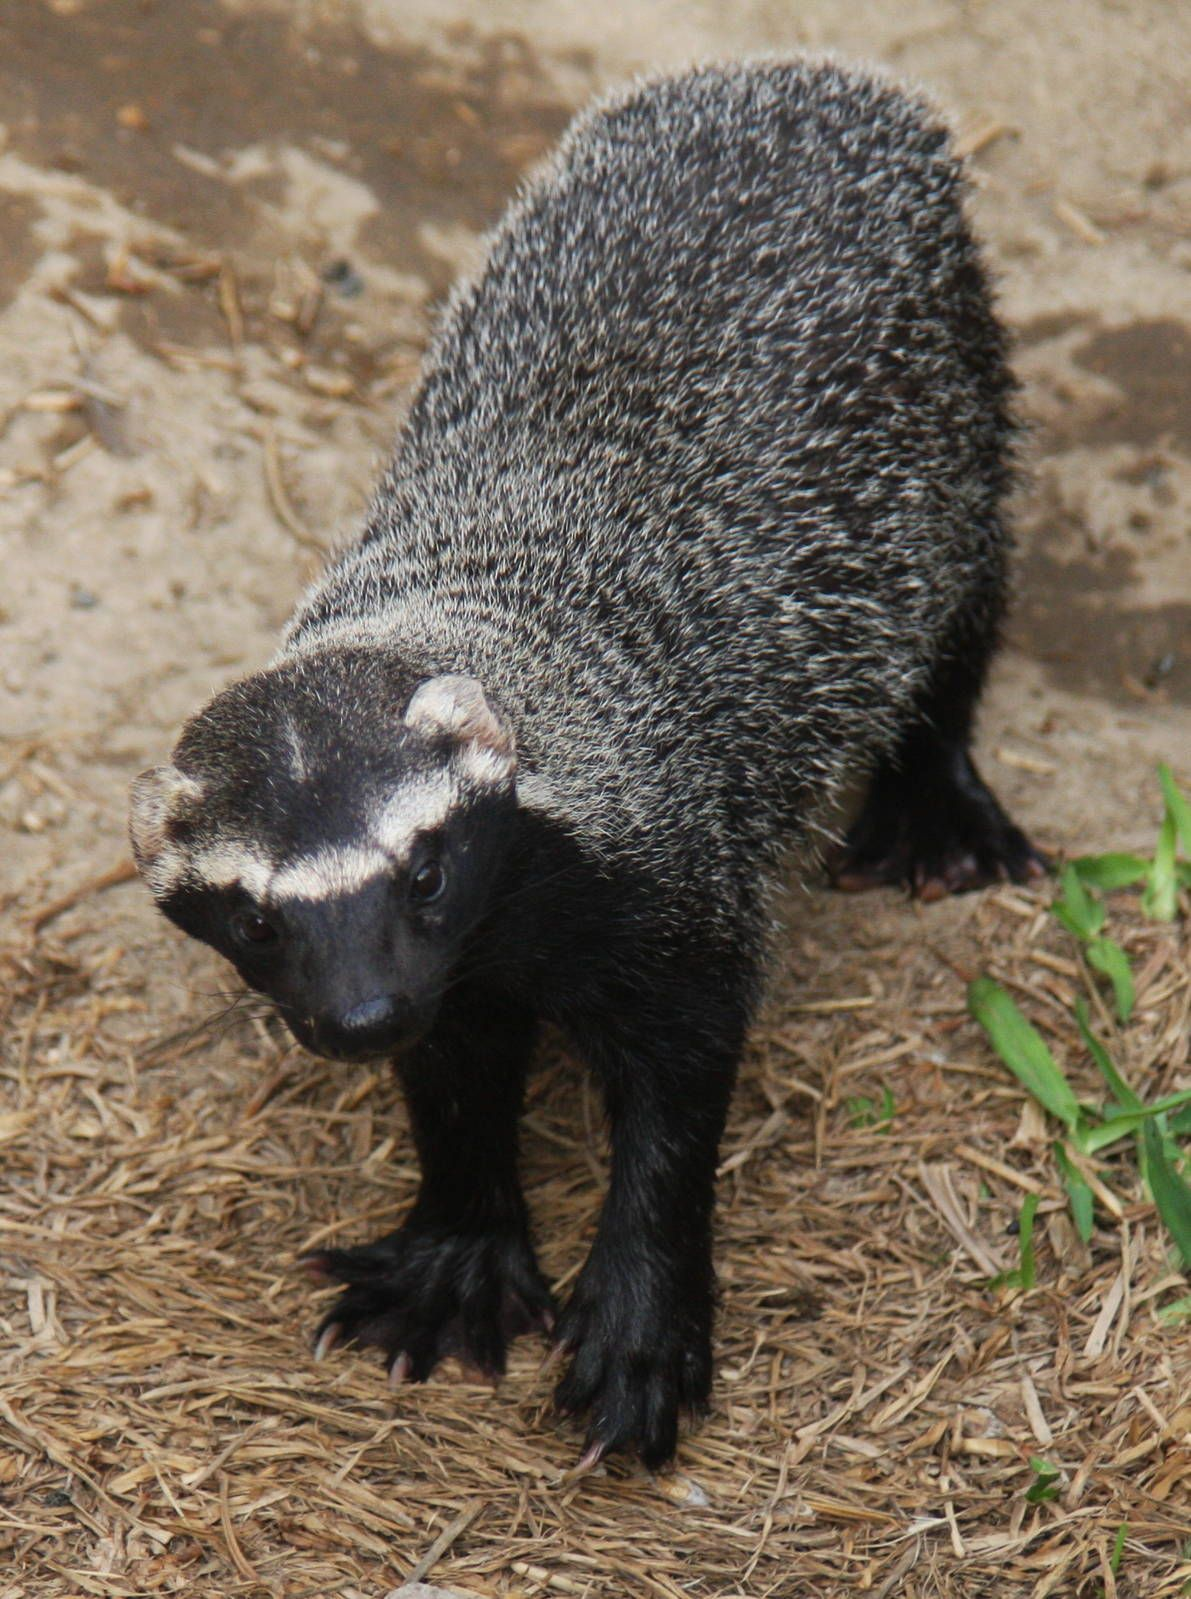 Lesser Grison (Galictis cuja) is a species of mustelid